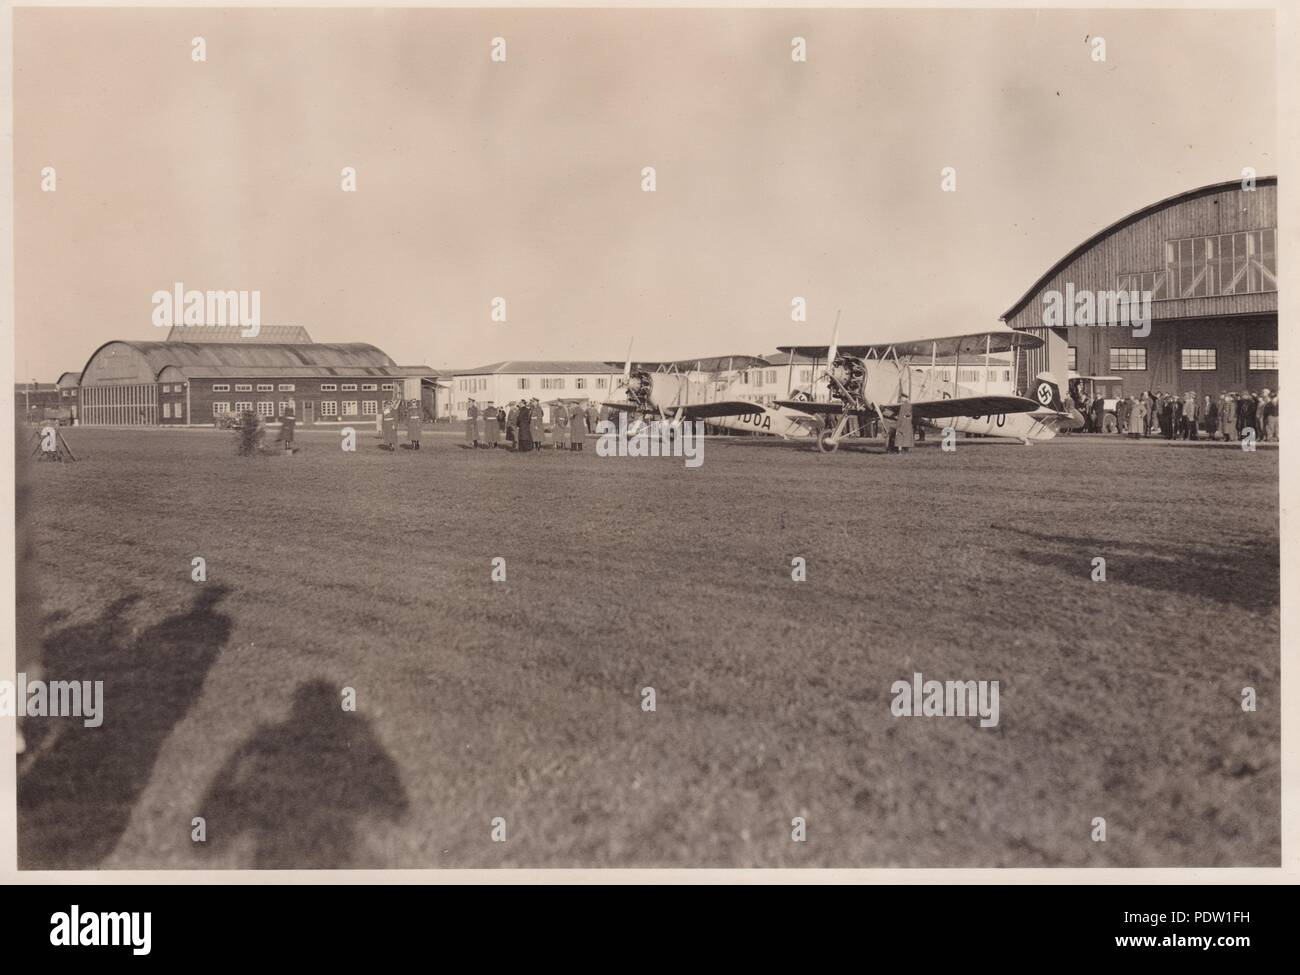 Image from the photo album of Oberfeldwebel Karl Gendner of 1. Staffel, Kampfgeschwader 40: Giebelstadt Airfield in 1936, base of 8./KG 355. - Stock Image